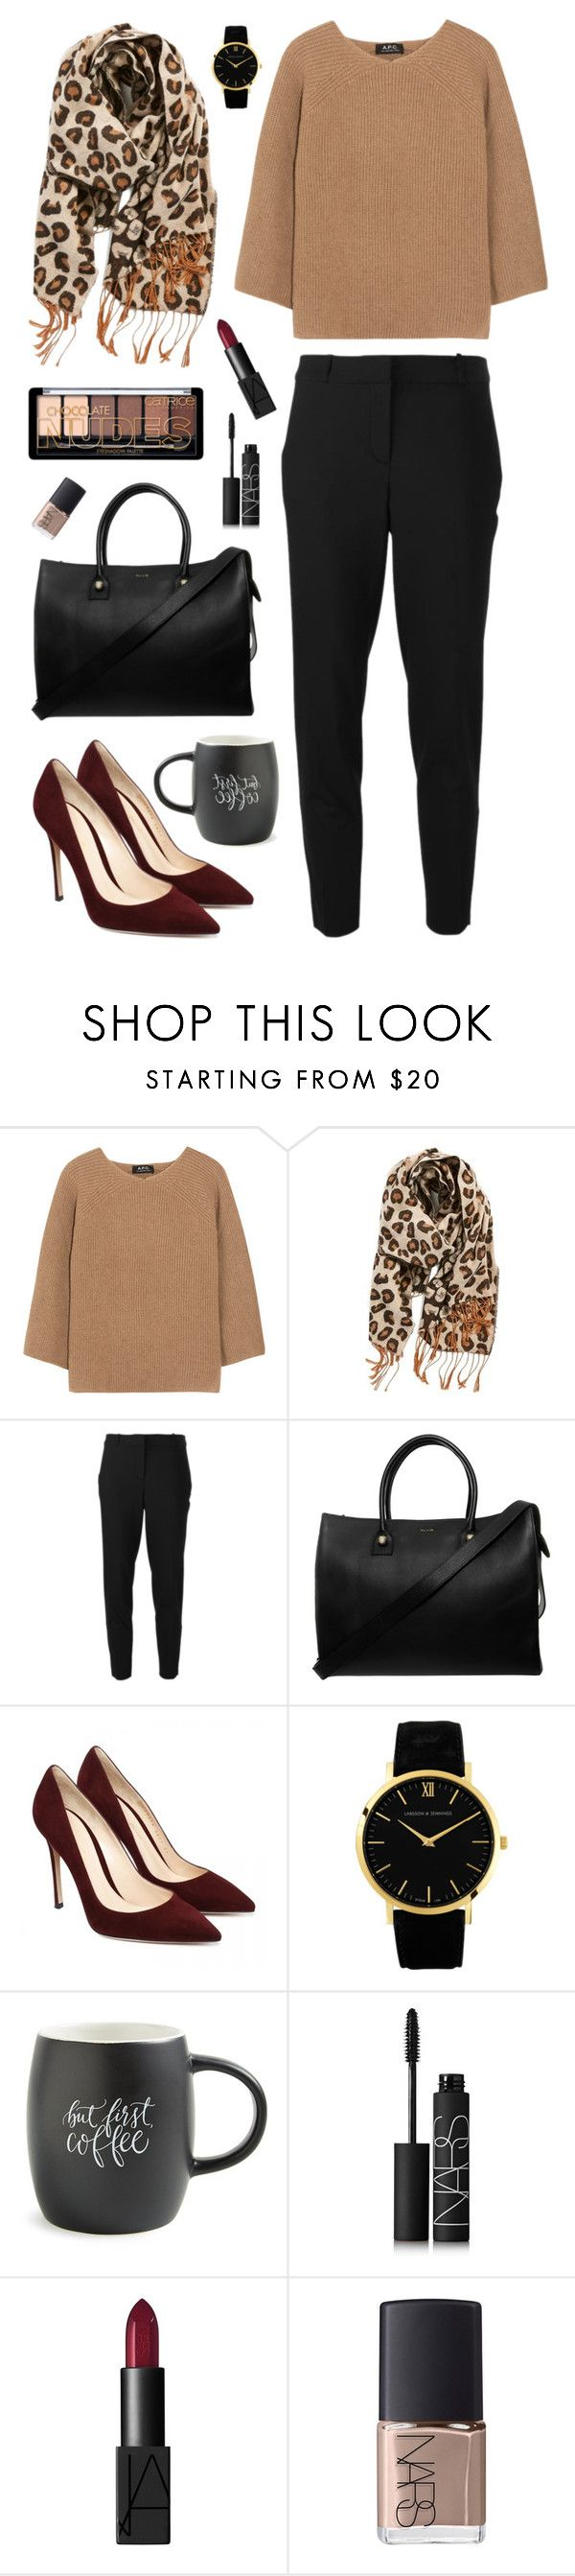 """""""Brown and Scarf"""" by nabilaclydea on Polyvore featuring A.P.C., BP., MICHAEL Michael Kors, Paul & Joe, Larsson & Jennings, Printable Wisdom, NARS Cosmetics and scarf"""